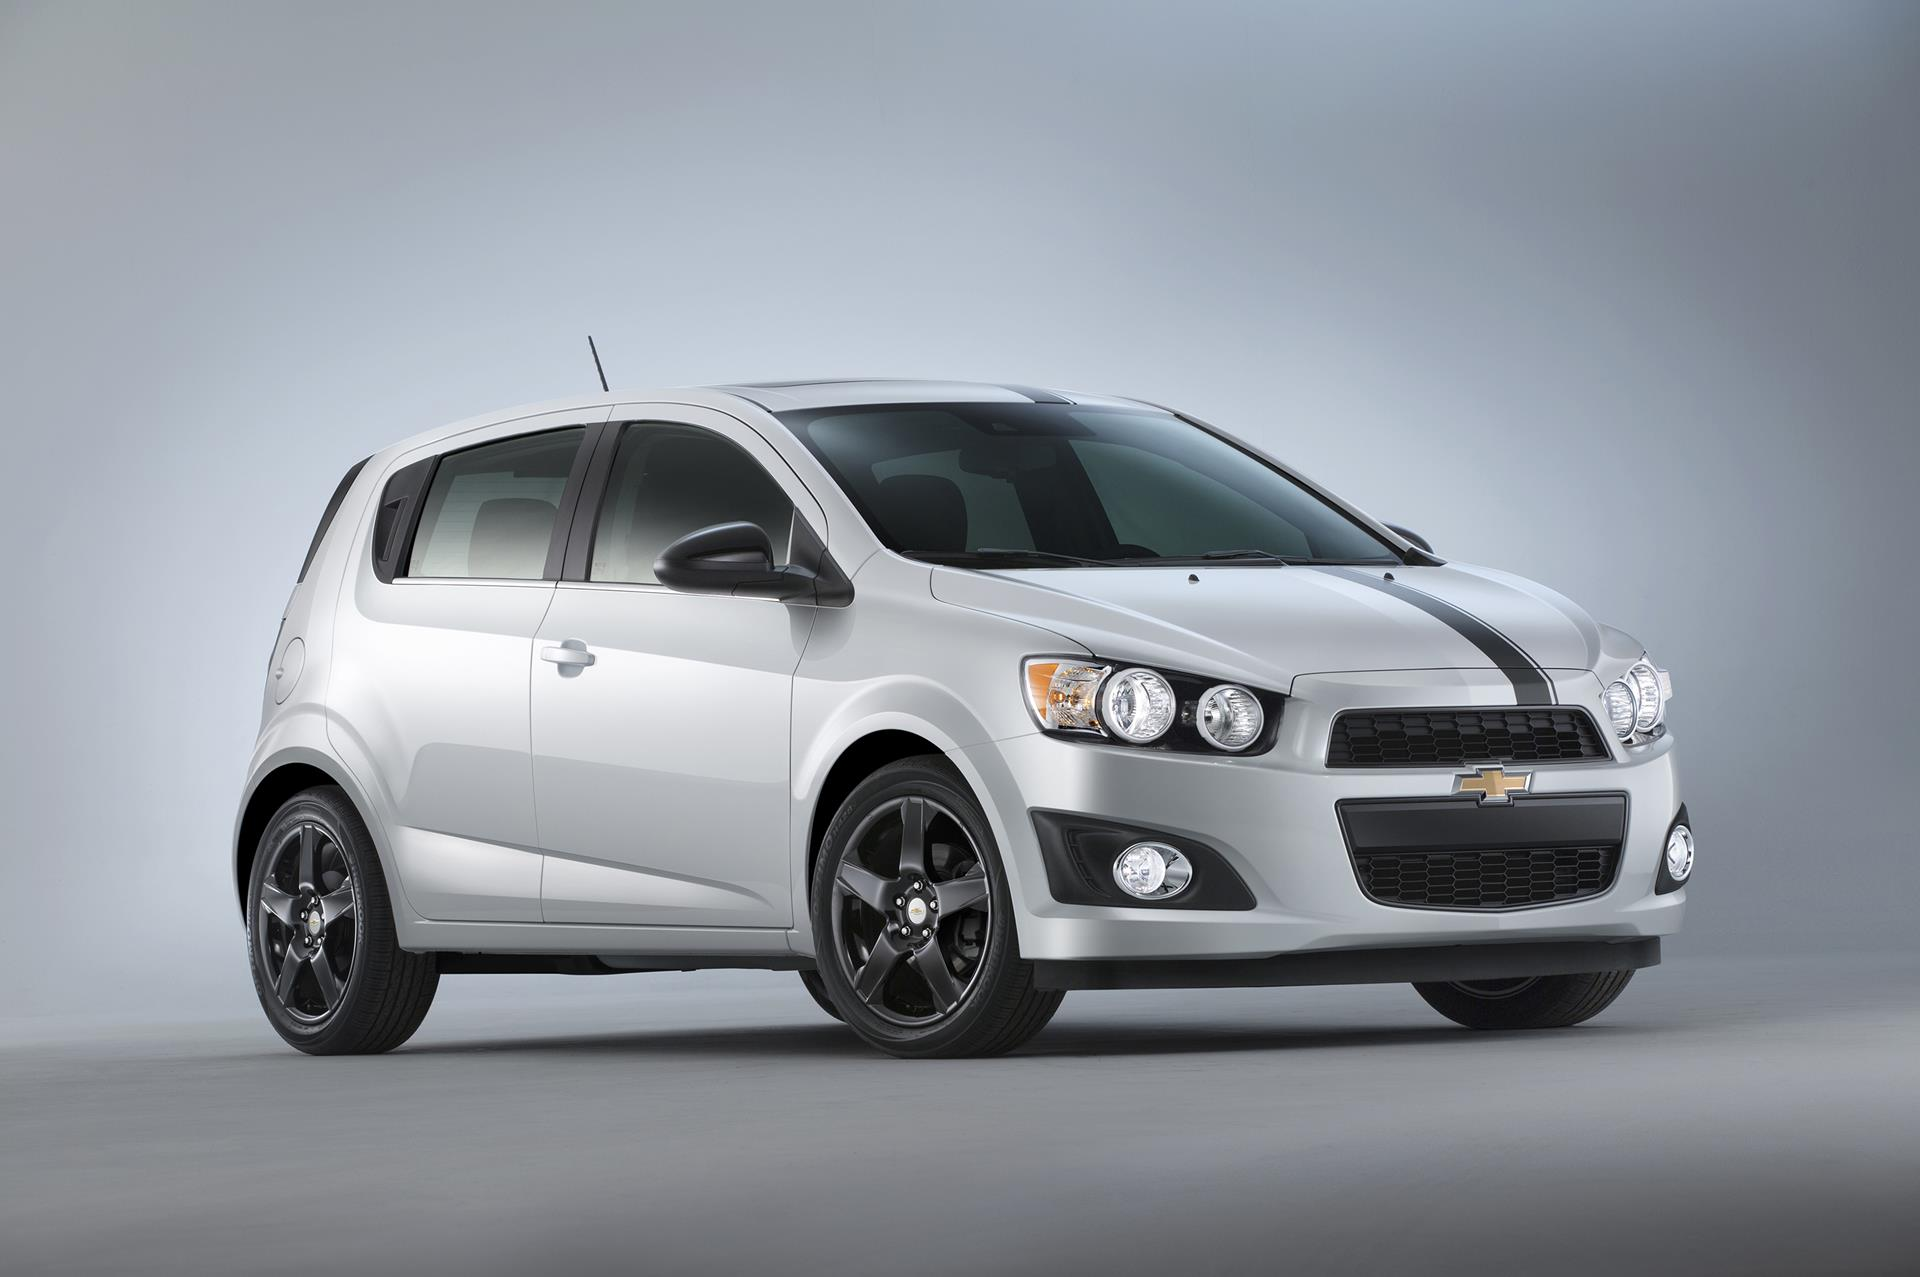 2015 chevrolet sonic sonic accessories concept news and information. Black Bedroom Furniture Sets. Home Design Ideas